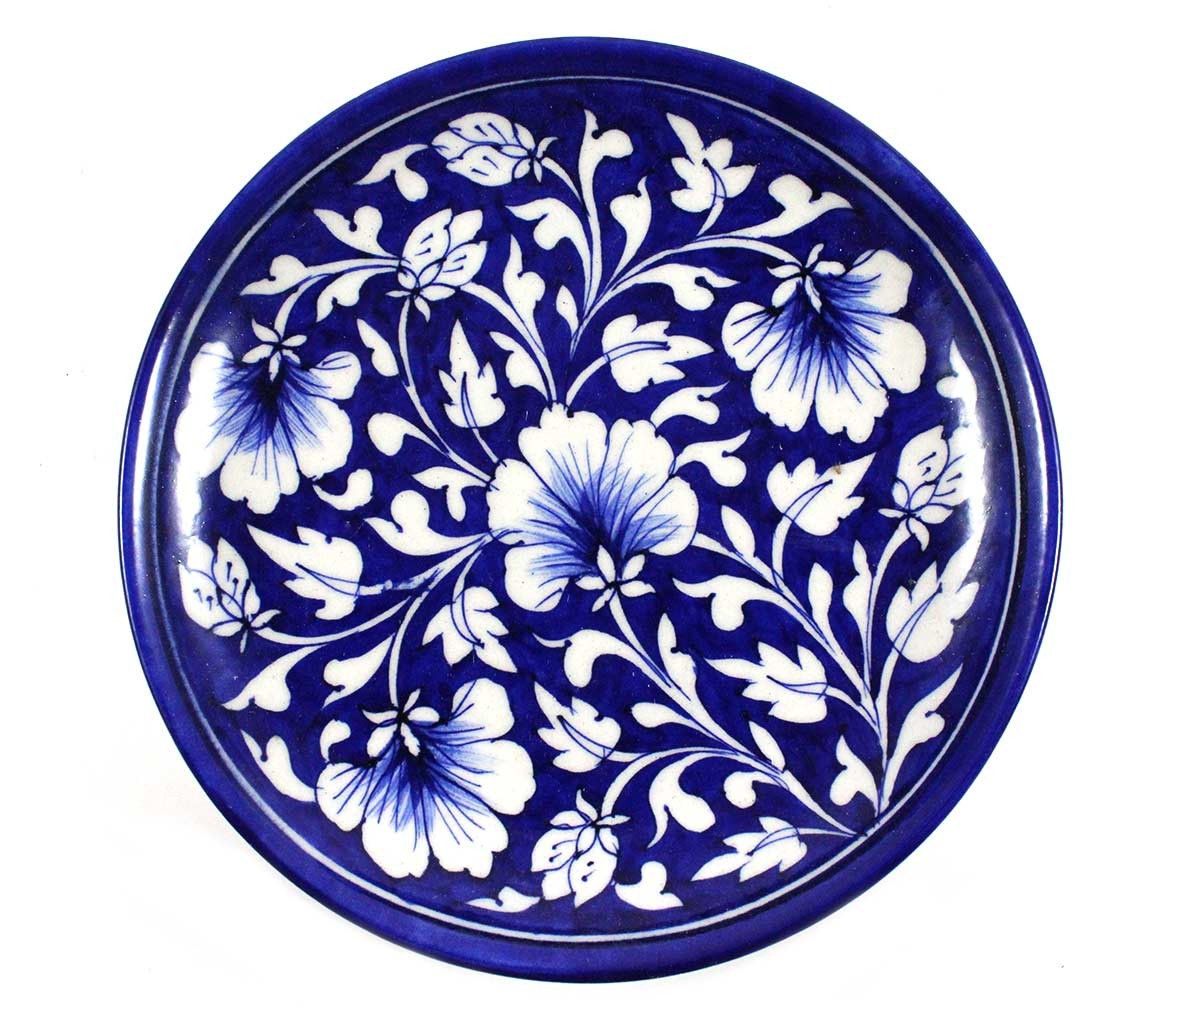 Buy Classy Blue Art Decorative Ceramic Wall Art Plates (2)-India Meets India  sc 1 st  India Meets India & Buy Classy Blue Art Decorative Ceramic Wall Art Plates (2)-India ...